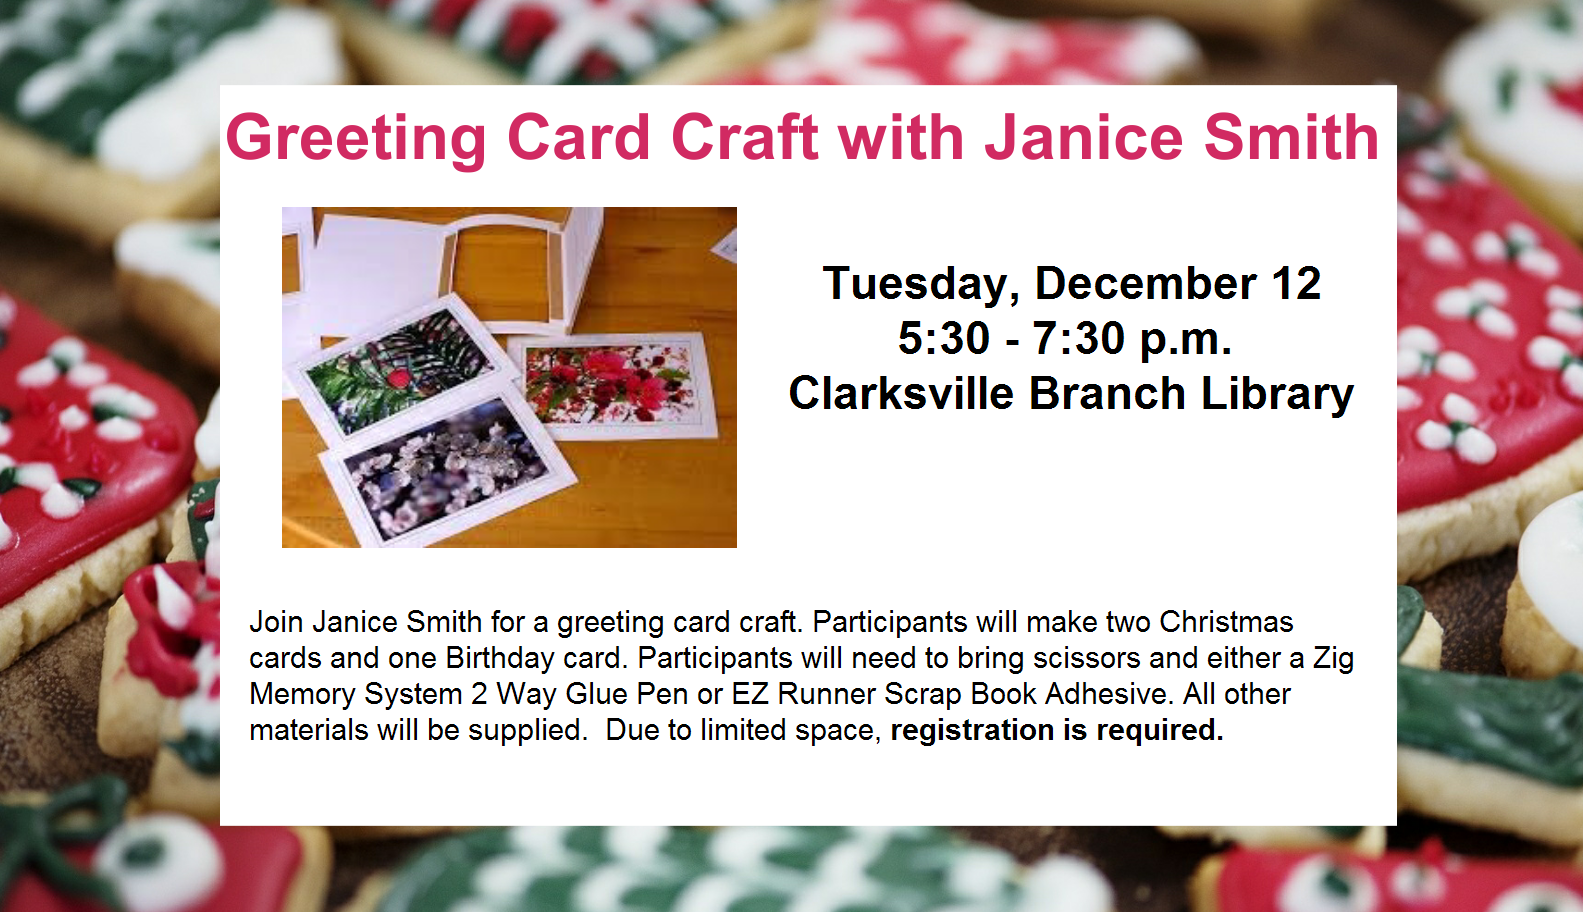 Greeting card craft project on December 12